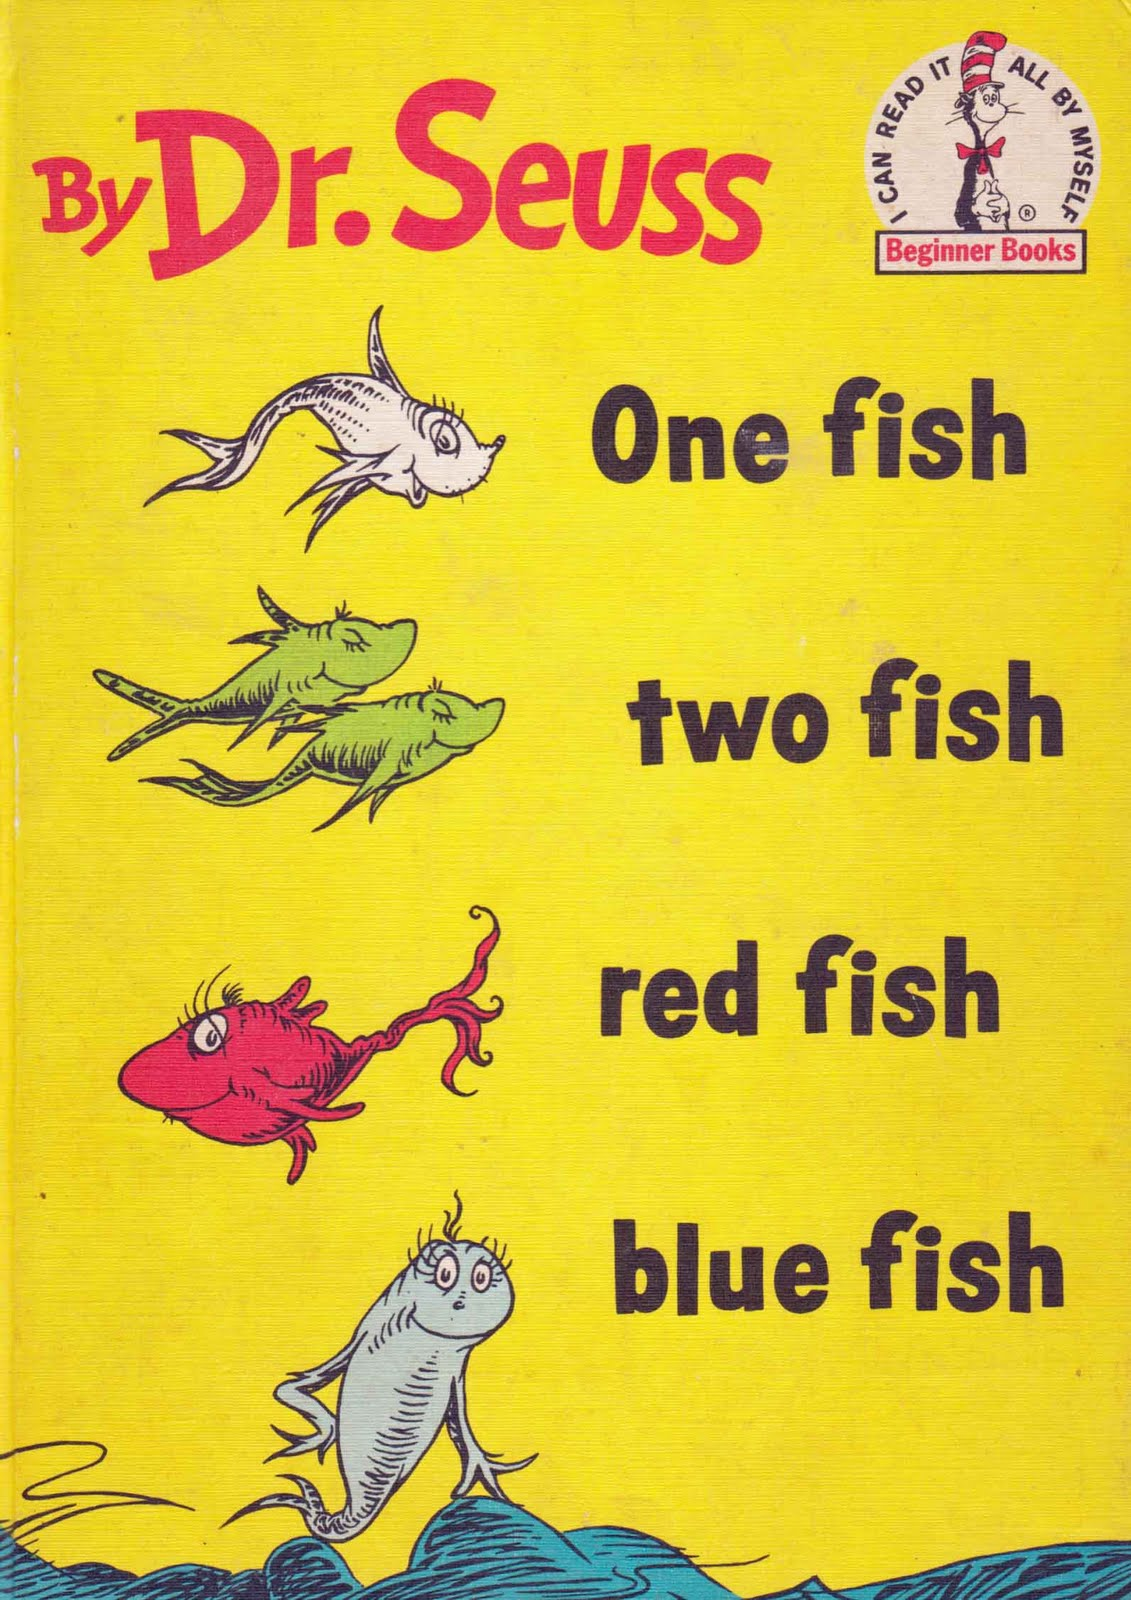 blue fish red fish Kids will have fun with this sight word matching game inspired by one fish two fish red fish blue fish by dr seuss.